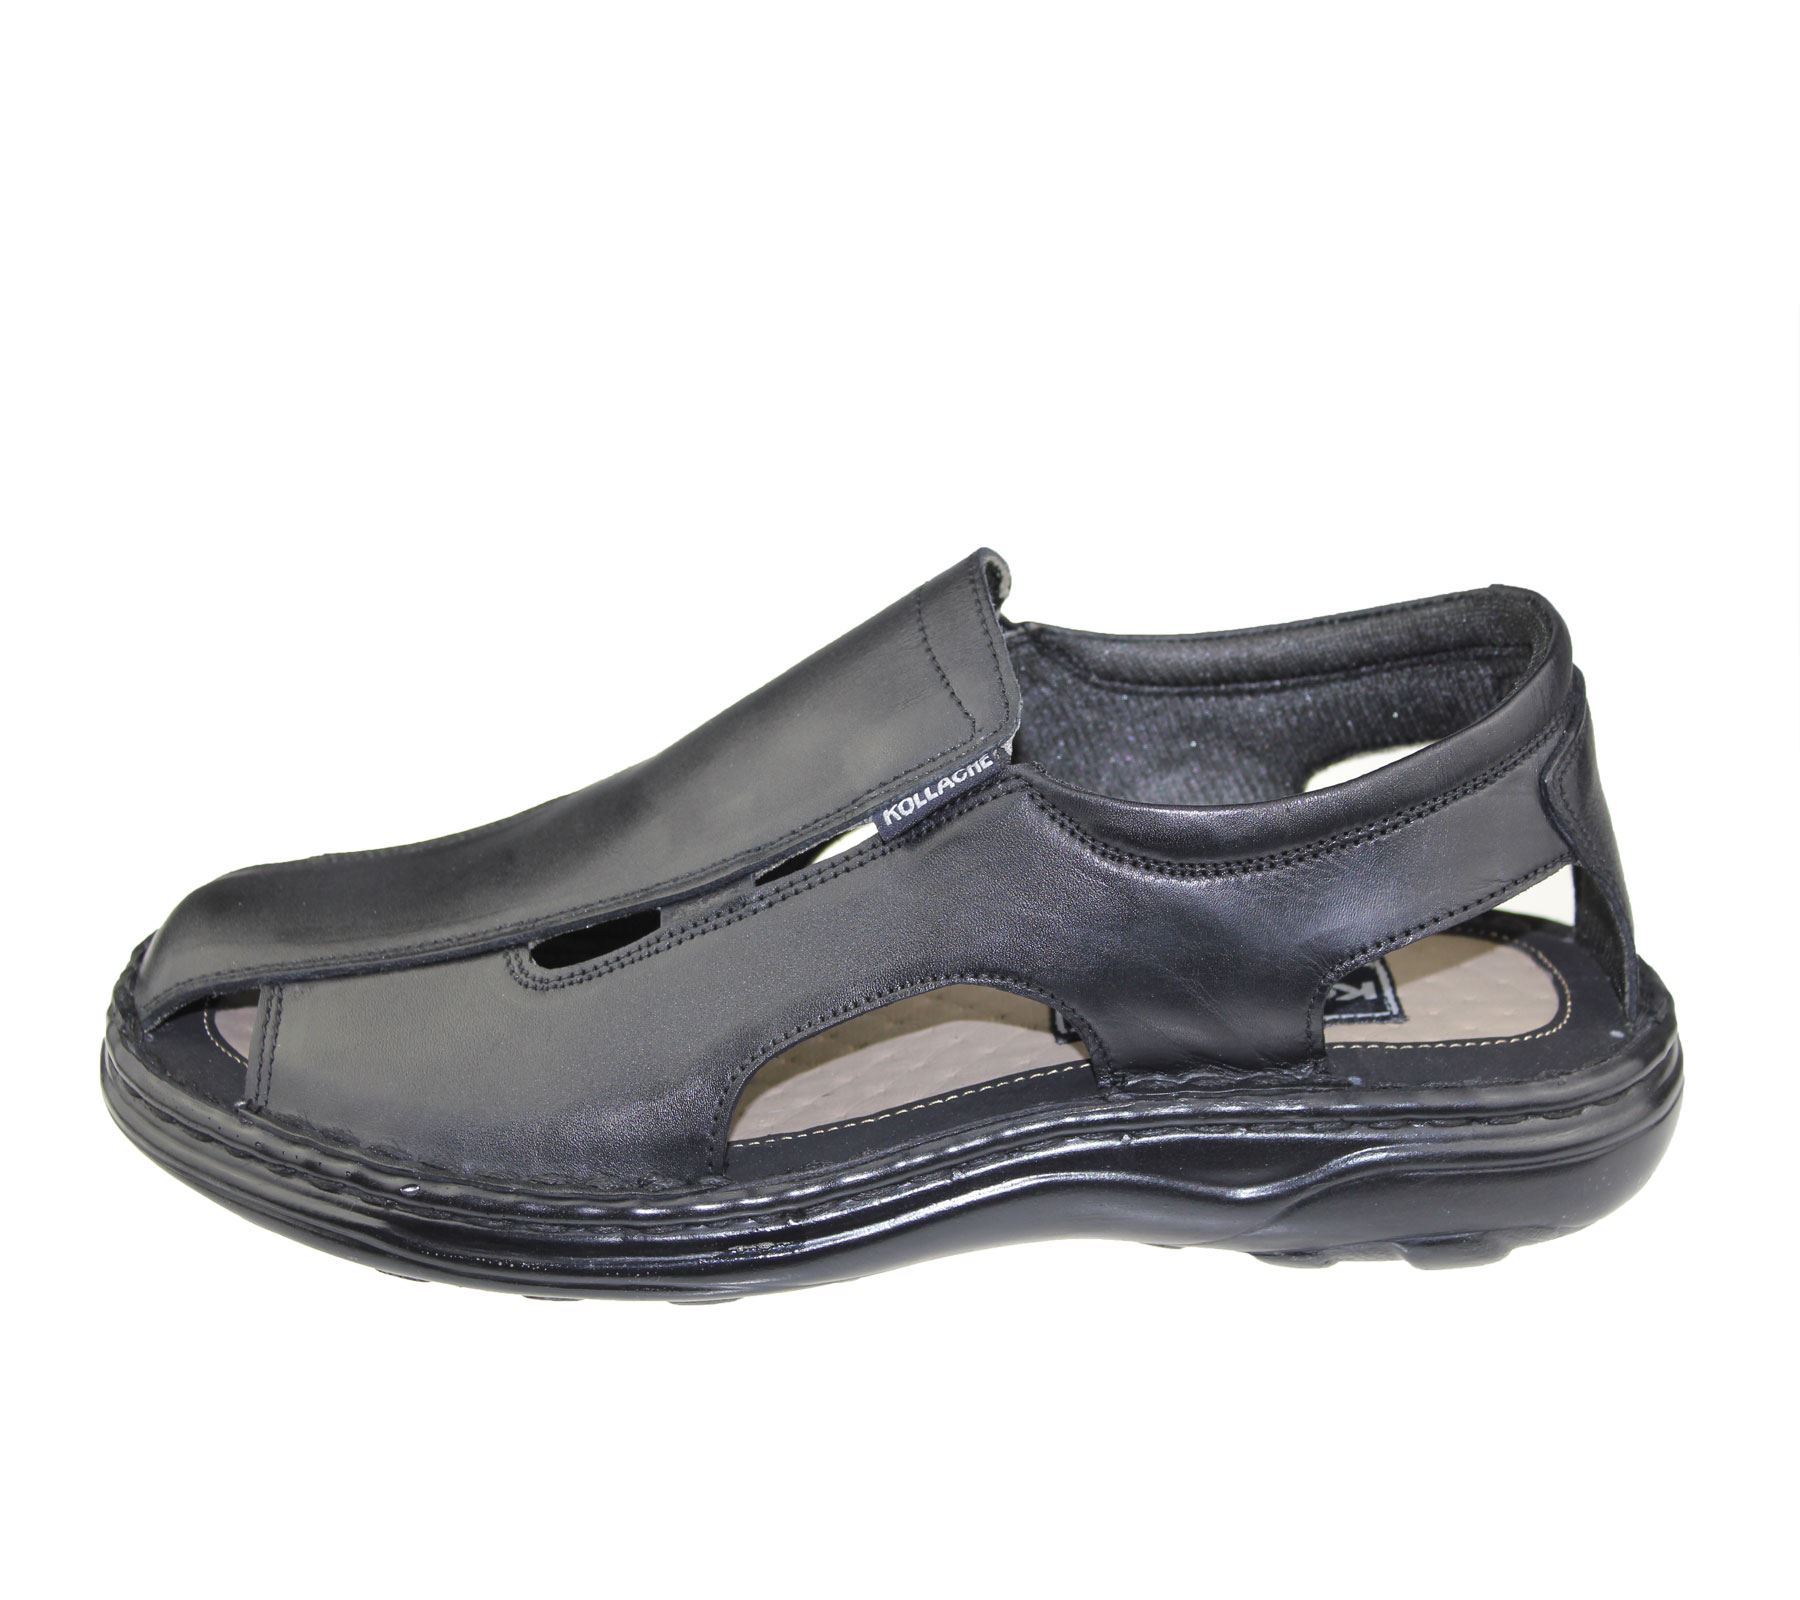 Mens-Slip-On-Sandals-Casual-Beach-Fashion-Casual-Walking-Leather-Wide-Fit-Shoes thumbnail 3